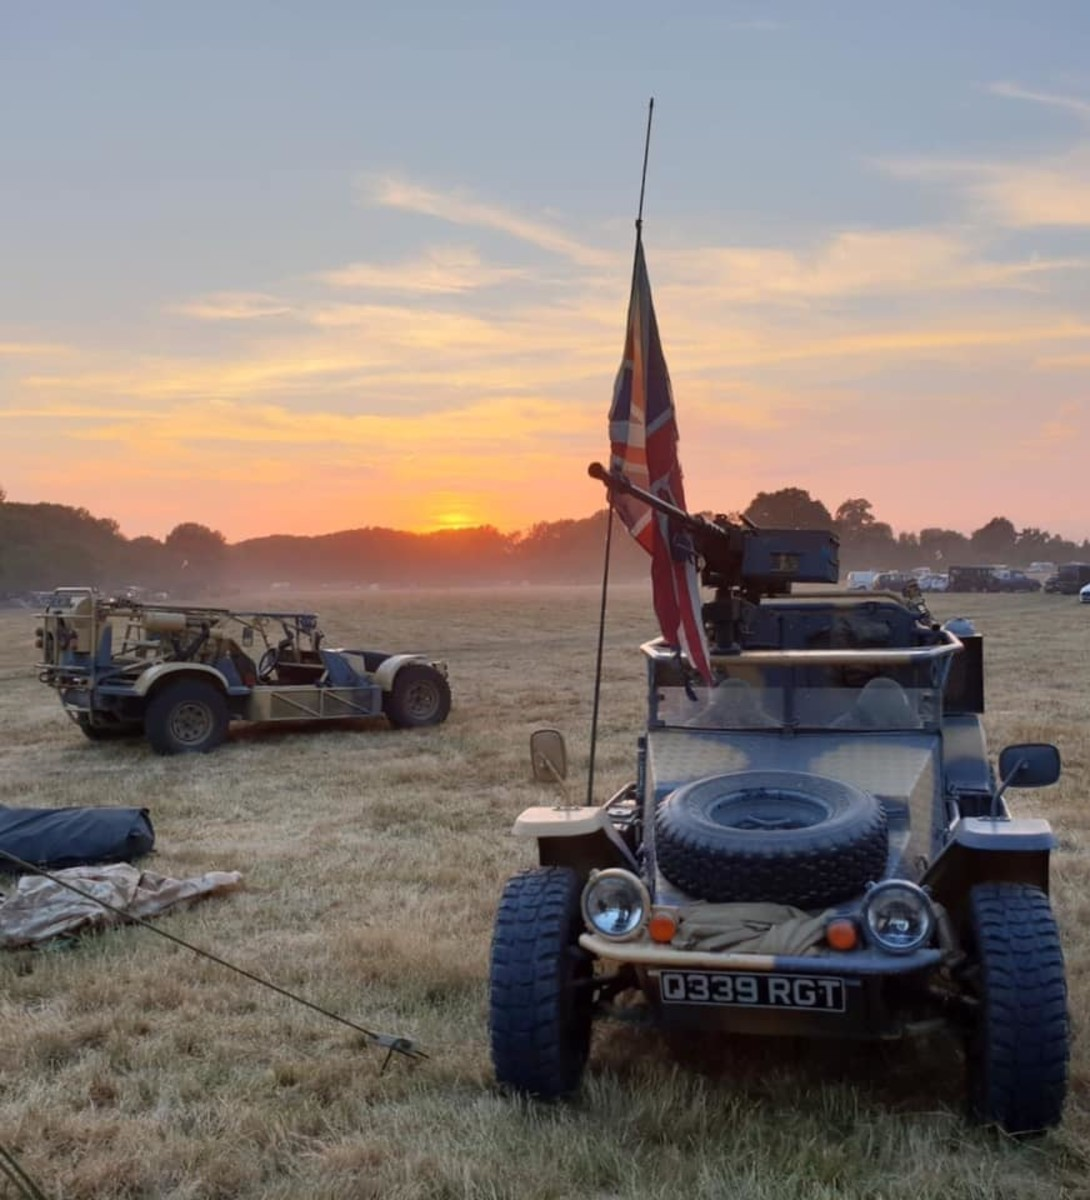 Pair of LSVs at sunset.